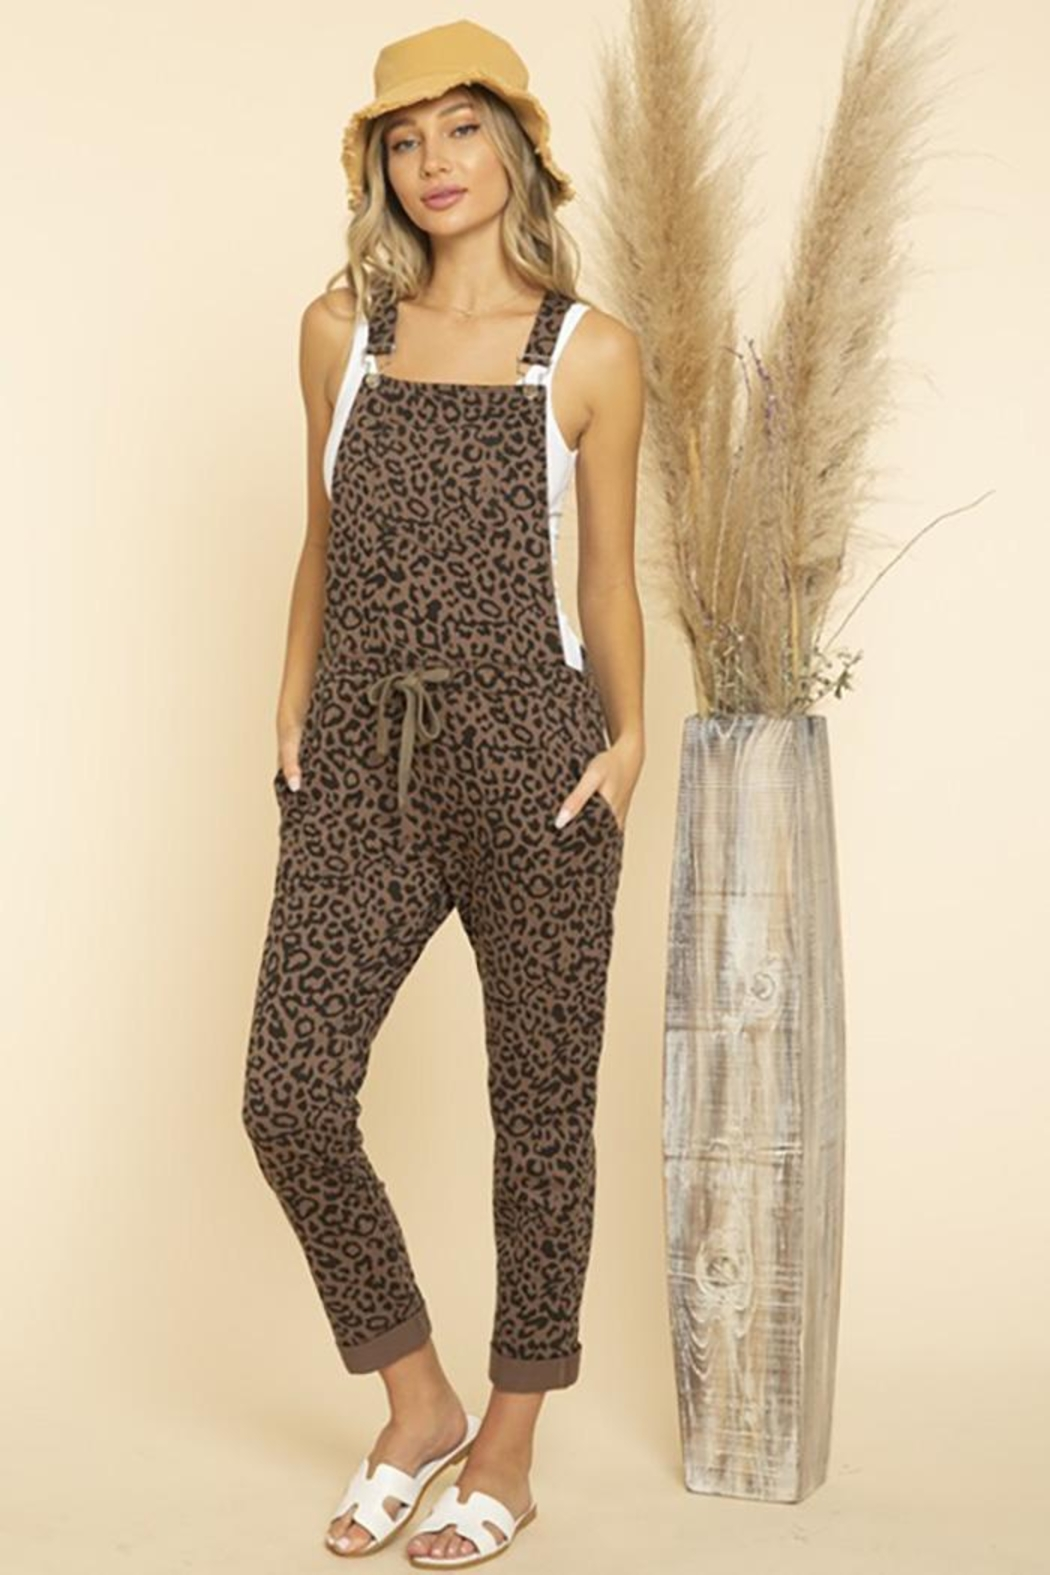 Blue Buttercup Leopard Printed Jumpsuit Overall - Main Image